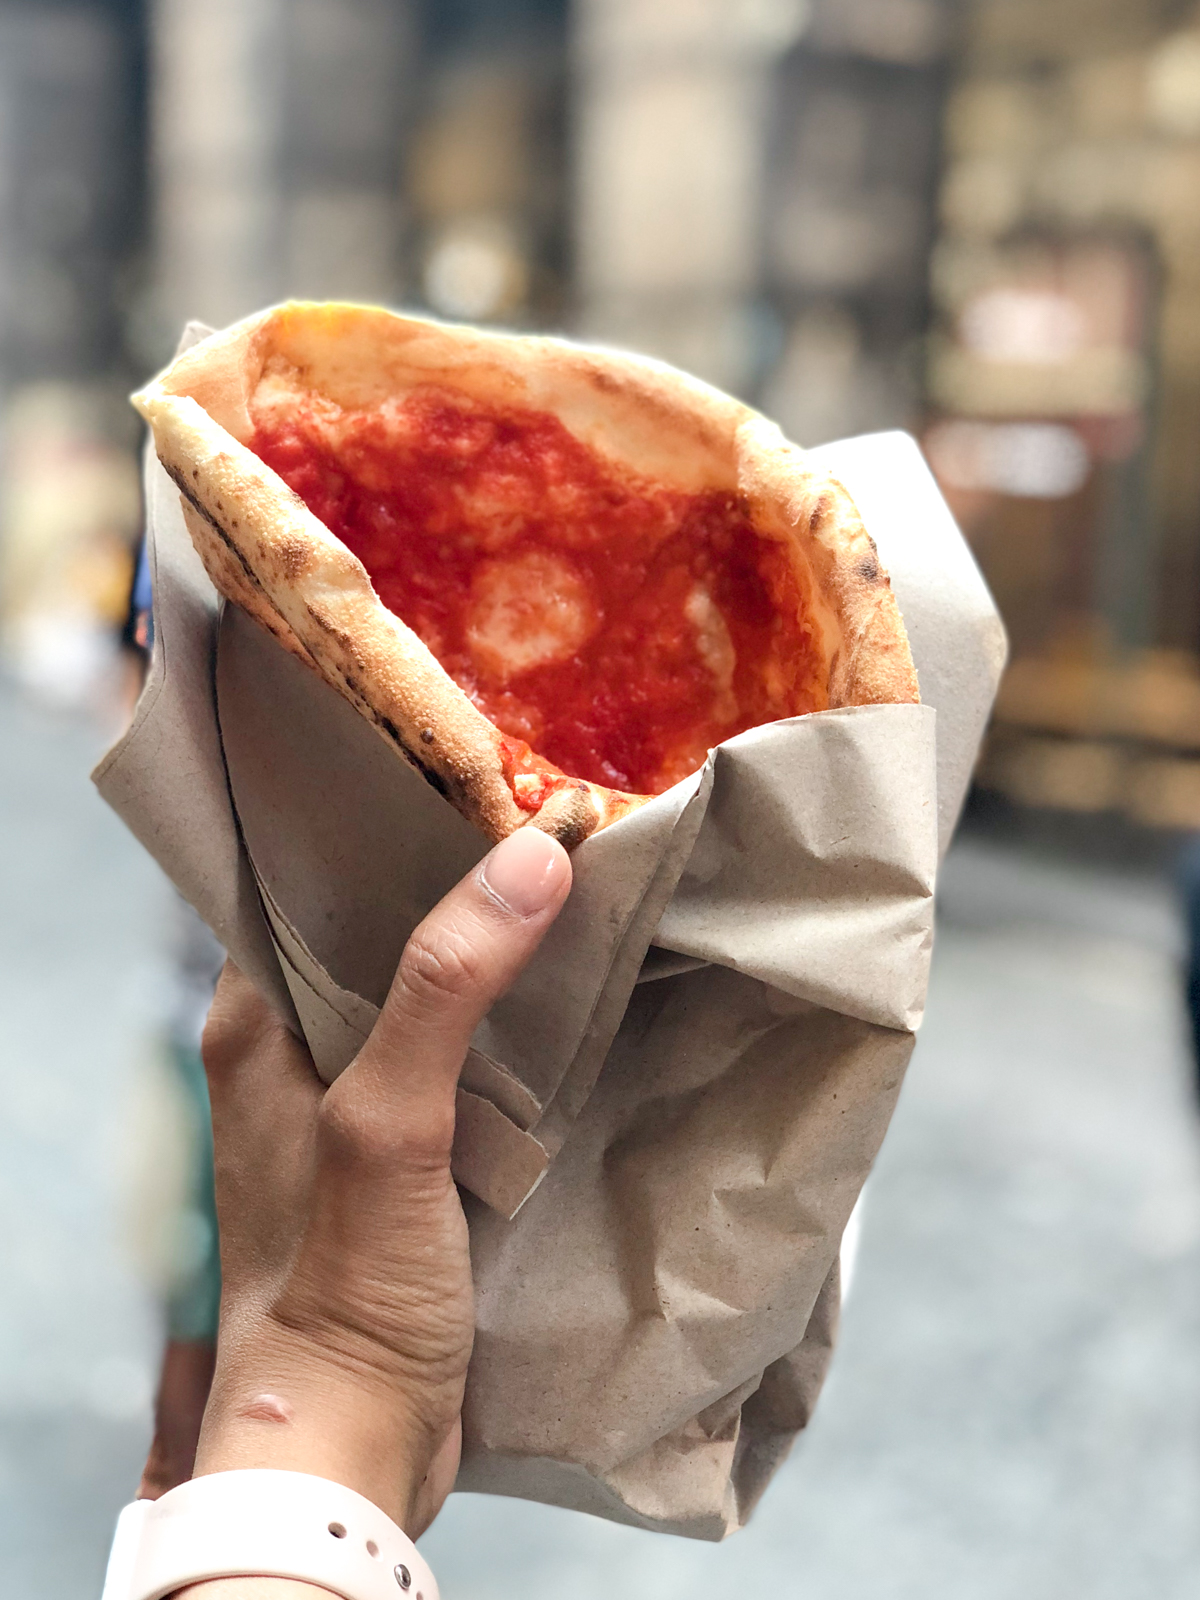 pizza folded like a sandwich in brown paper from Naples